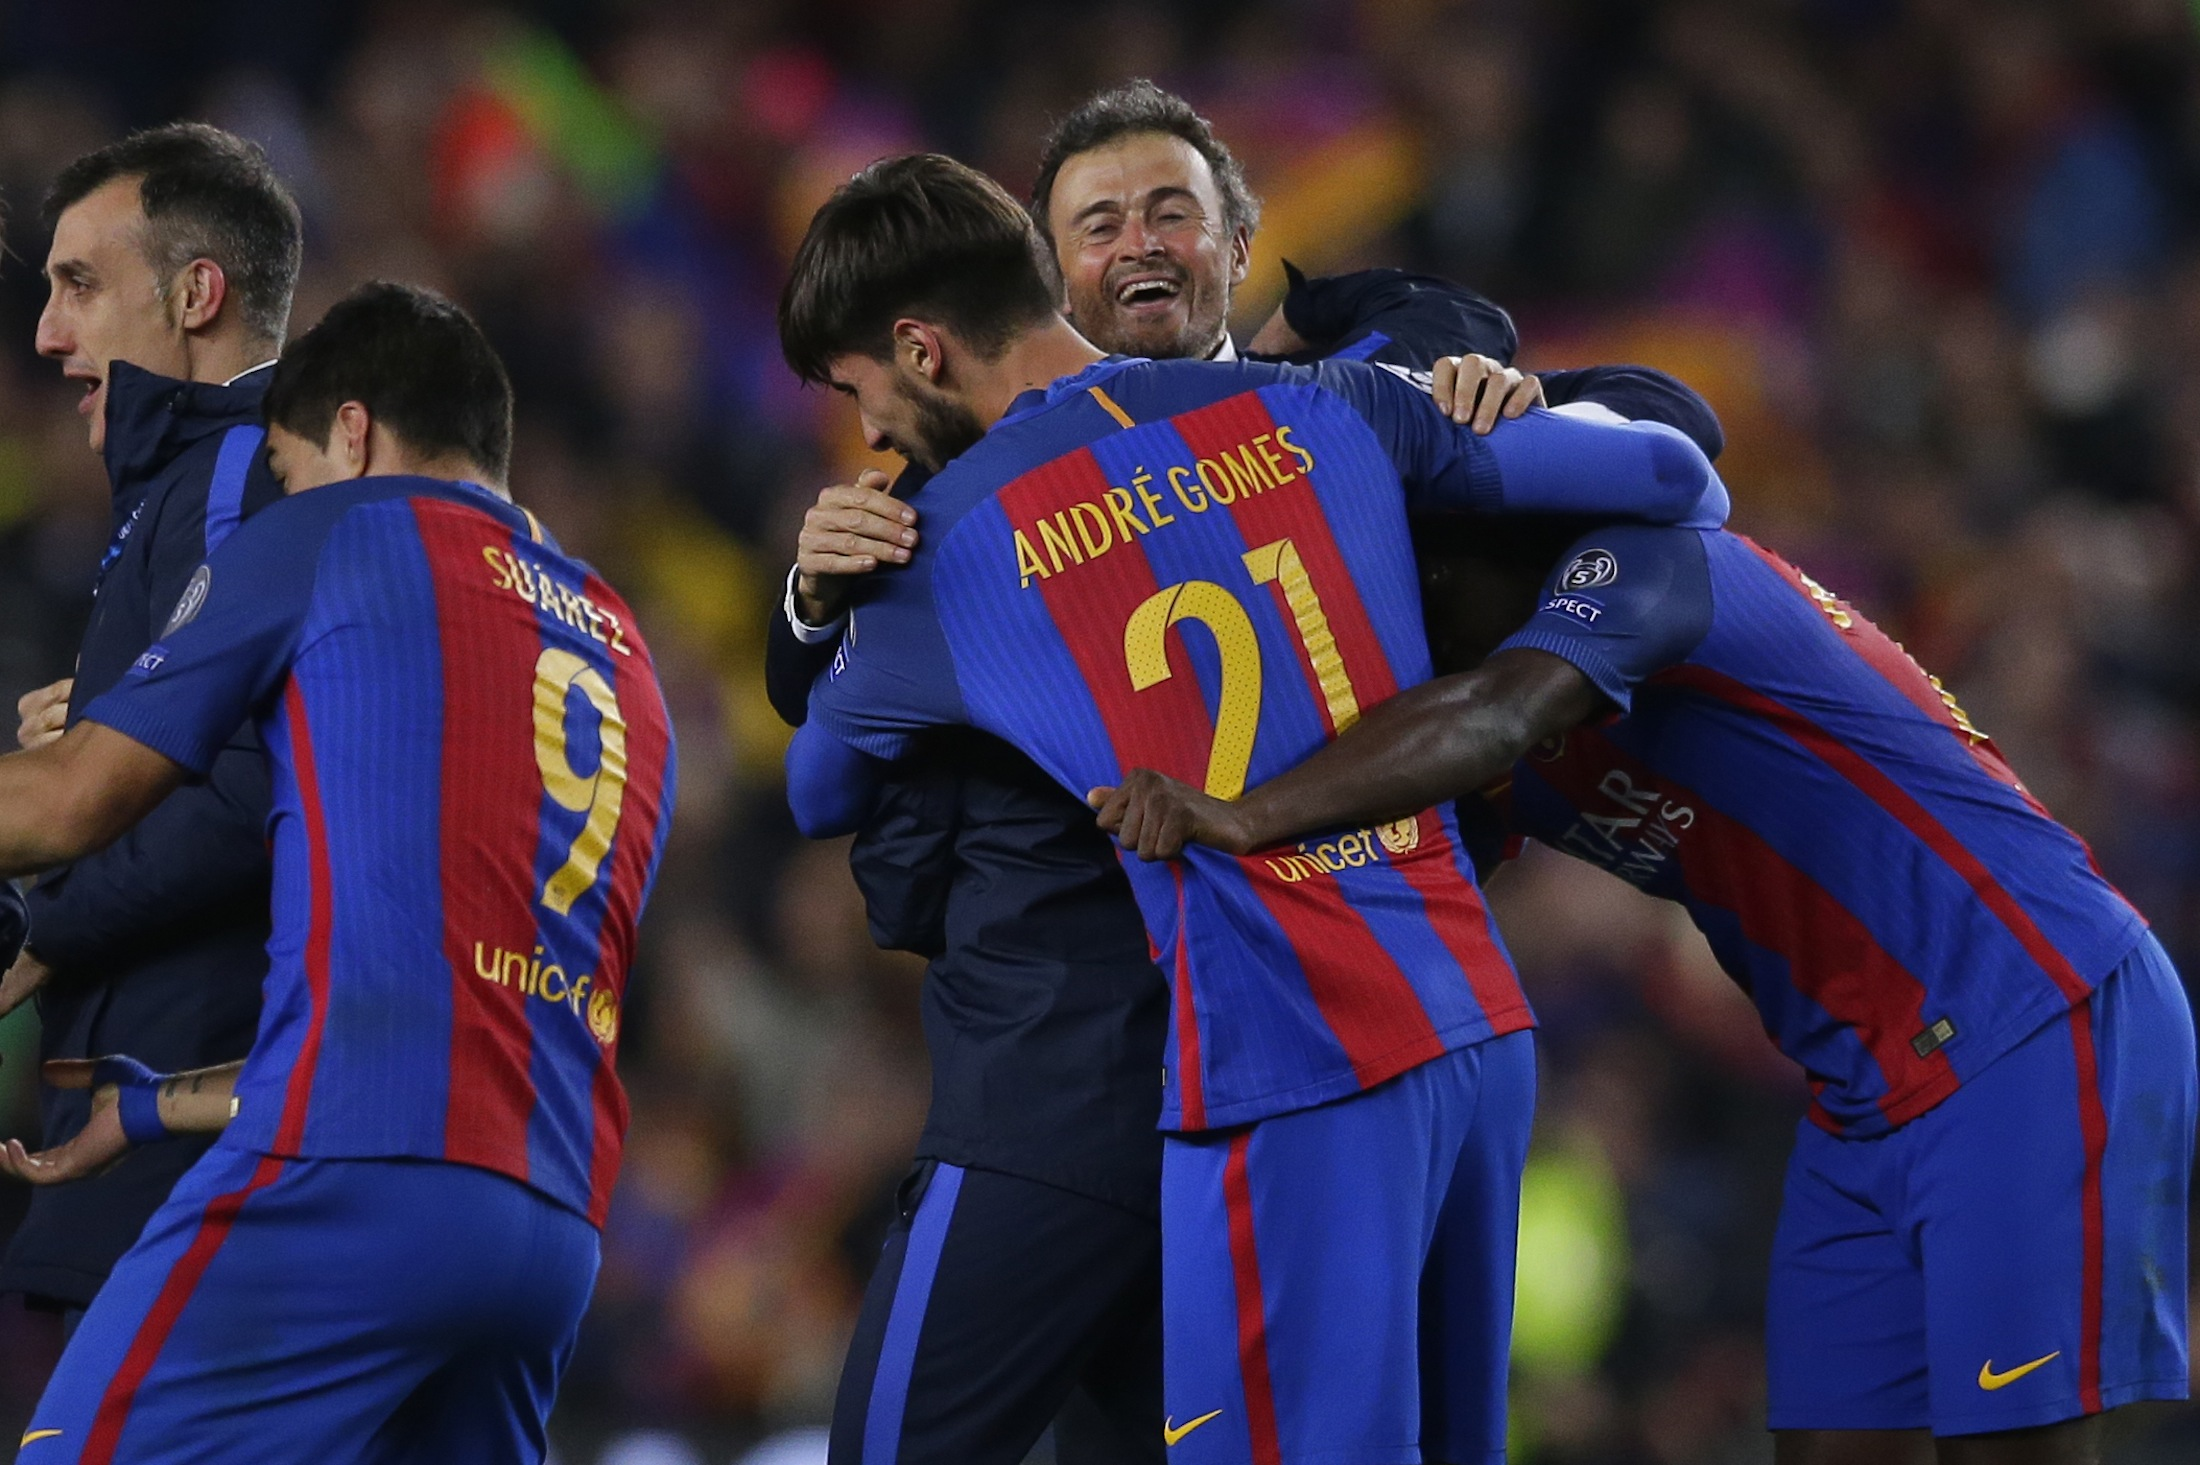 Barcelona's head coach Luis Enrique celebrates with some of his players at the end of the Champions League round of 16, second leg soccer match between FC Barcelona and Paris Saint Germain at the Camp Nou stadium inBarcelona, Spain, Wednesday March 8, 2017.Barcelona won the match 6-1 (6-5 on aggregate). (Manu Fernandez/AP)